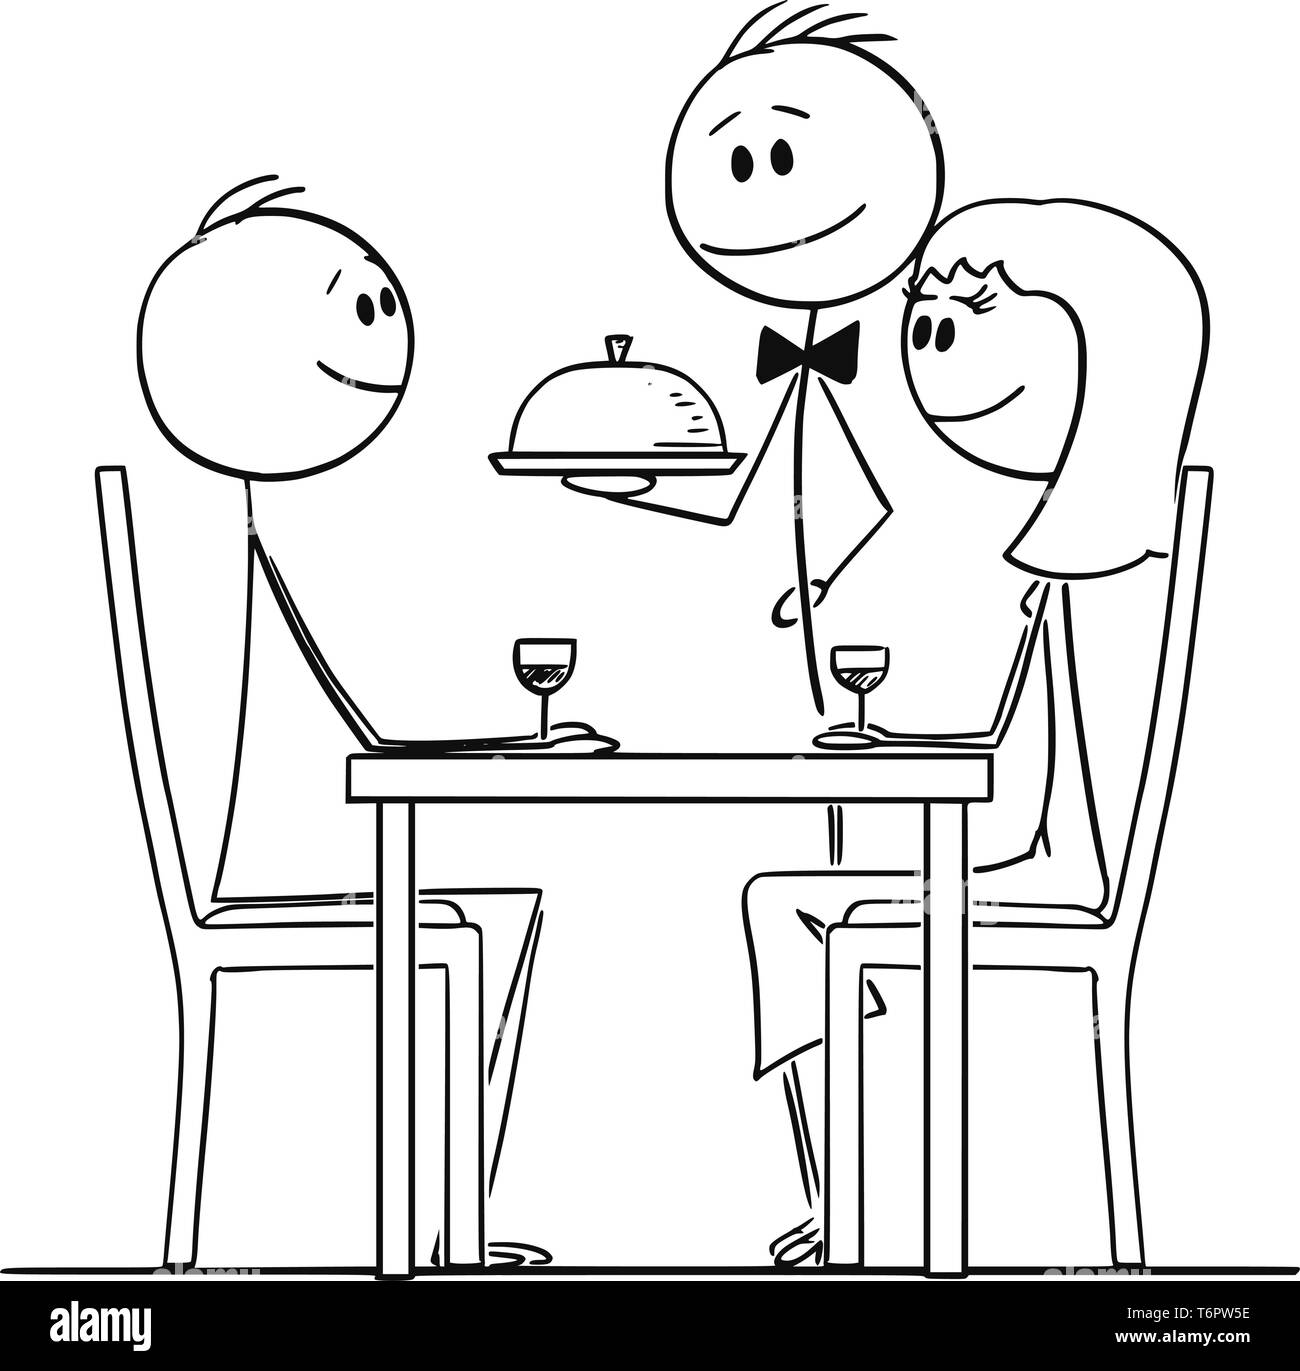 Cartoon stick figure drawing conceptual illustration of loving couple of man and woman sitting behind table in restaurant and watching waiter serving food. - Stock Vector